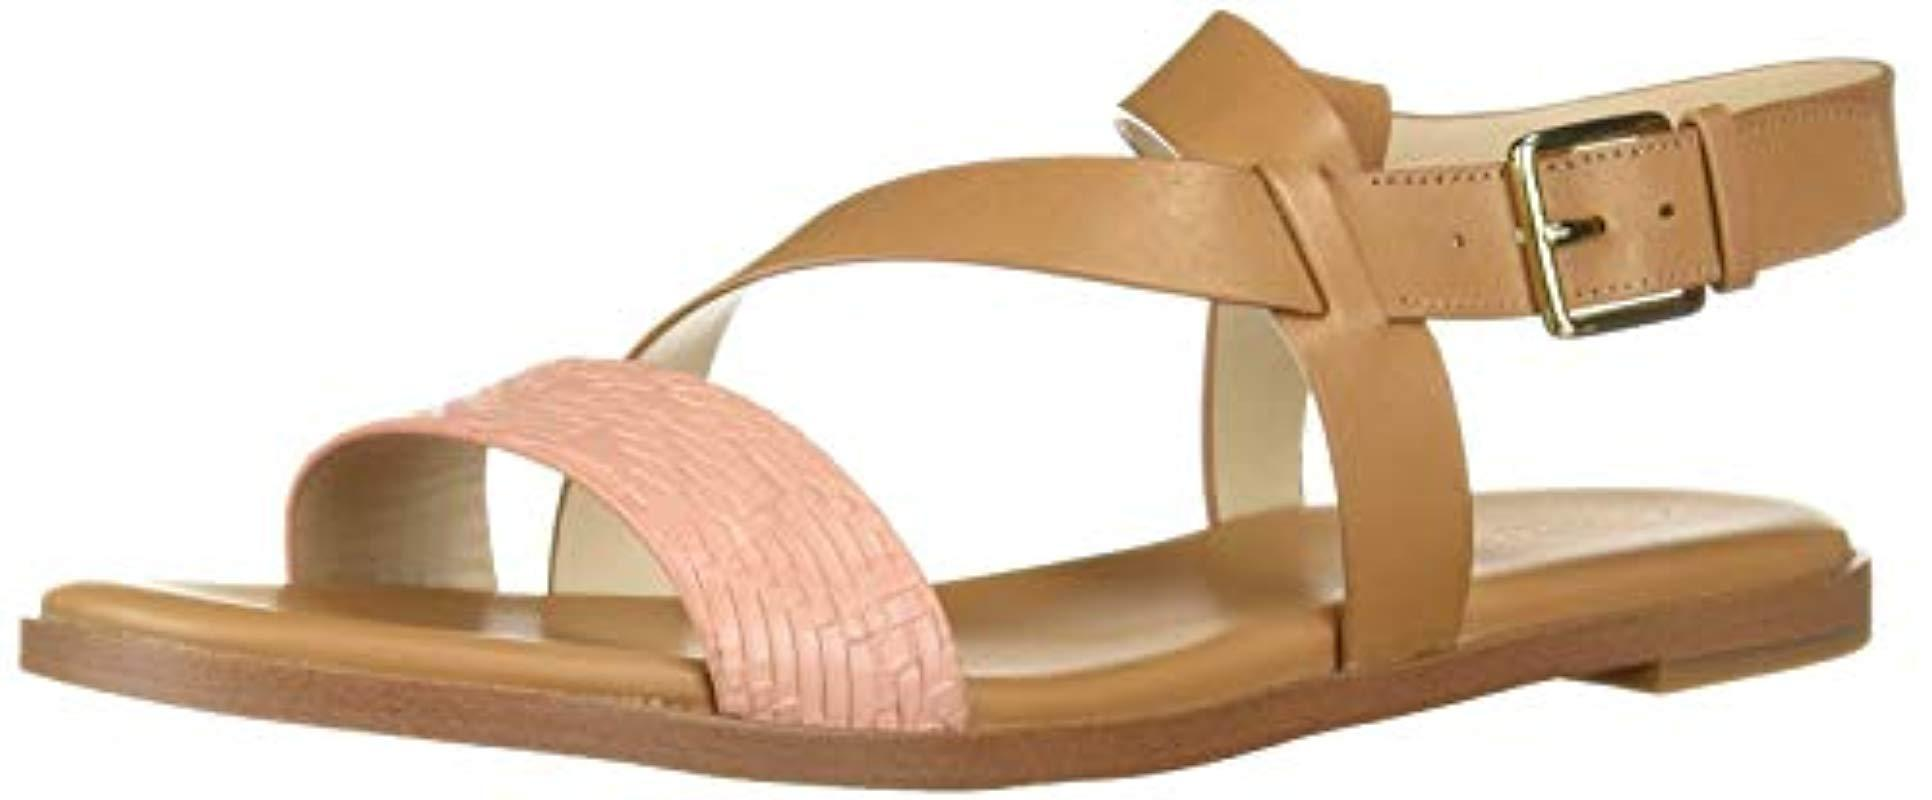 5fd514674cab Lyst - Cole Haan Findra Strappy Sandal Ii Flat - Save 12%